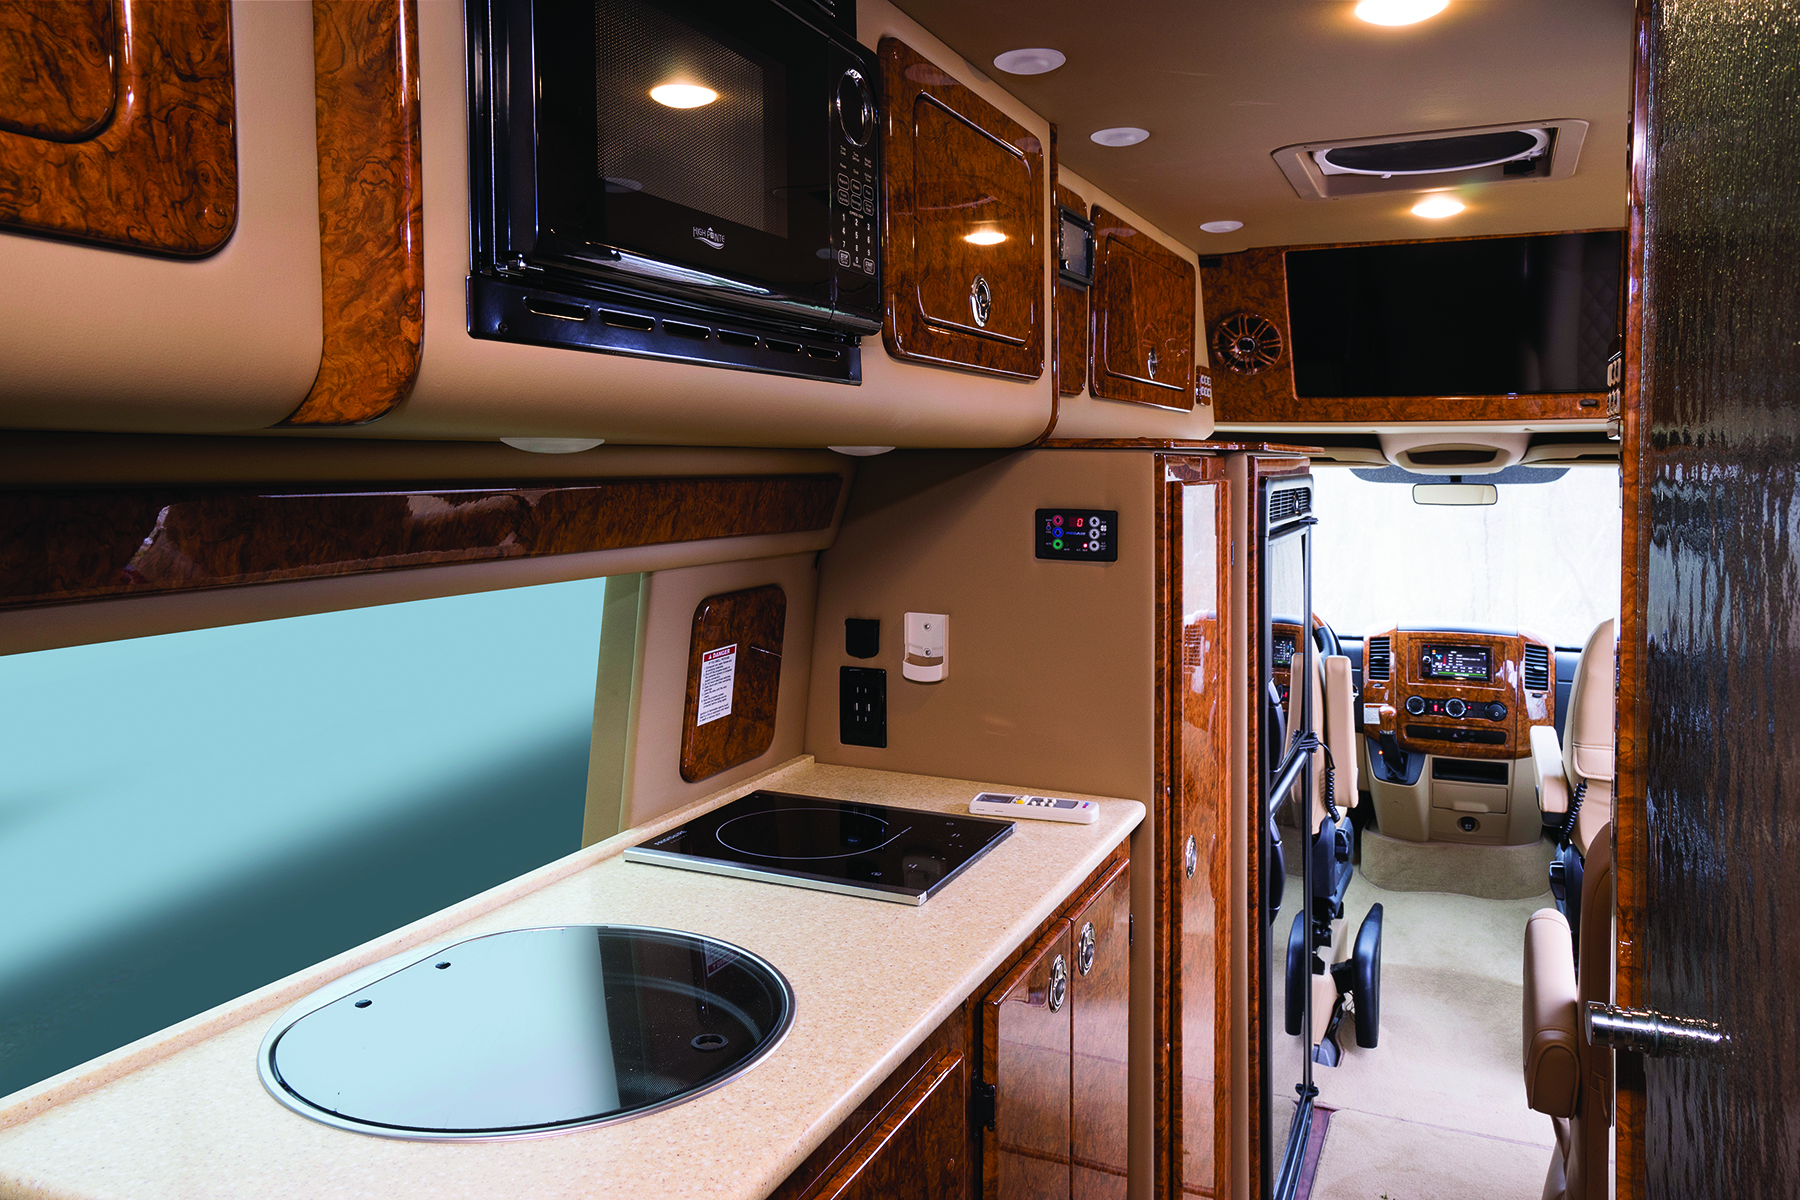 Interior of Midwest Automotive Designs Weekender Class B motorhome